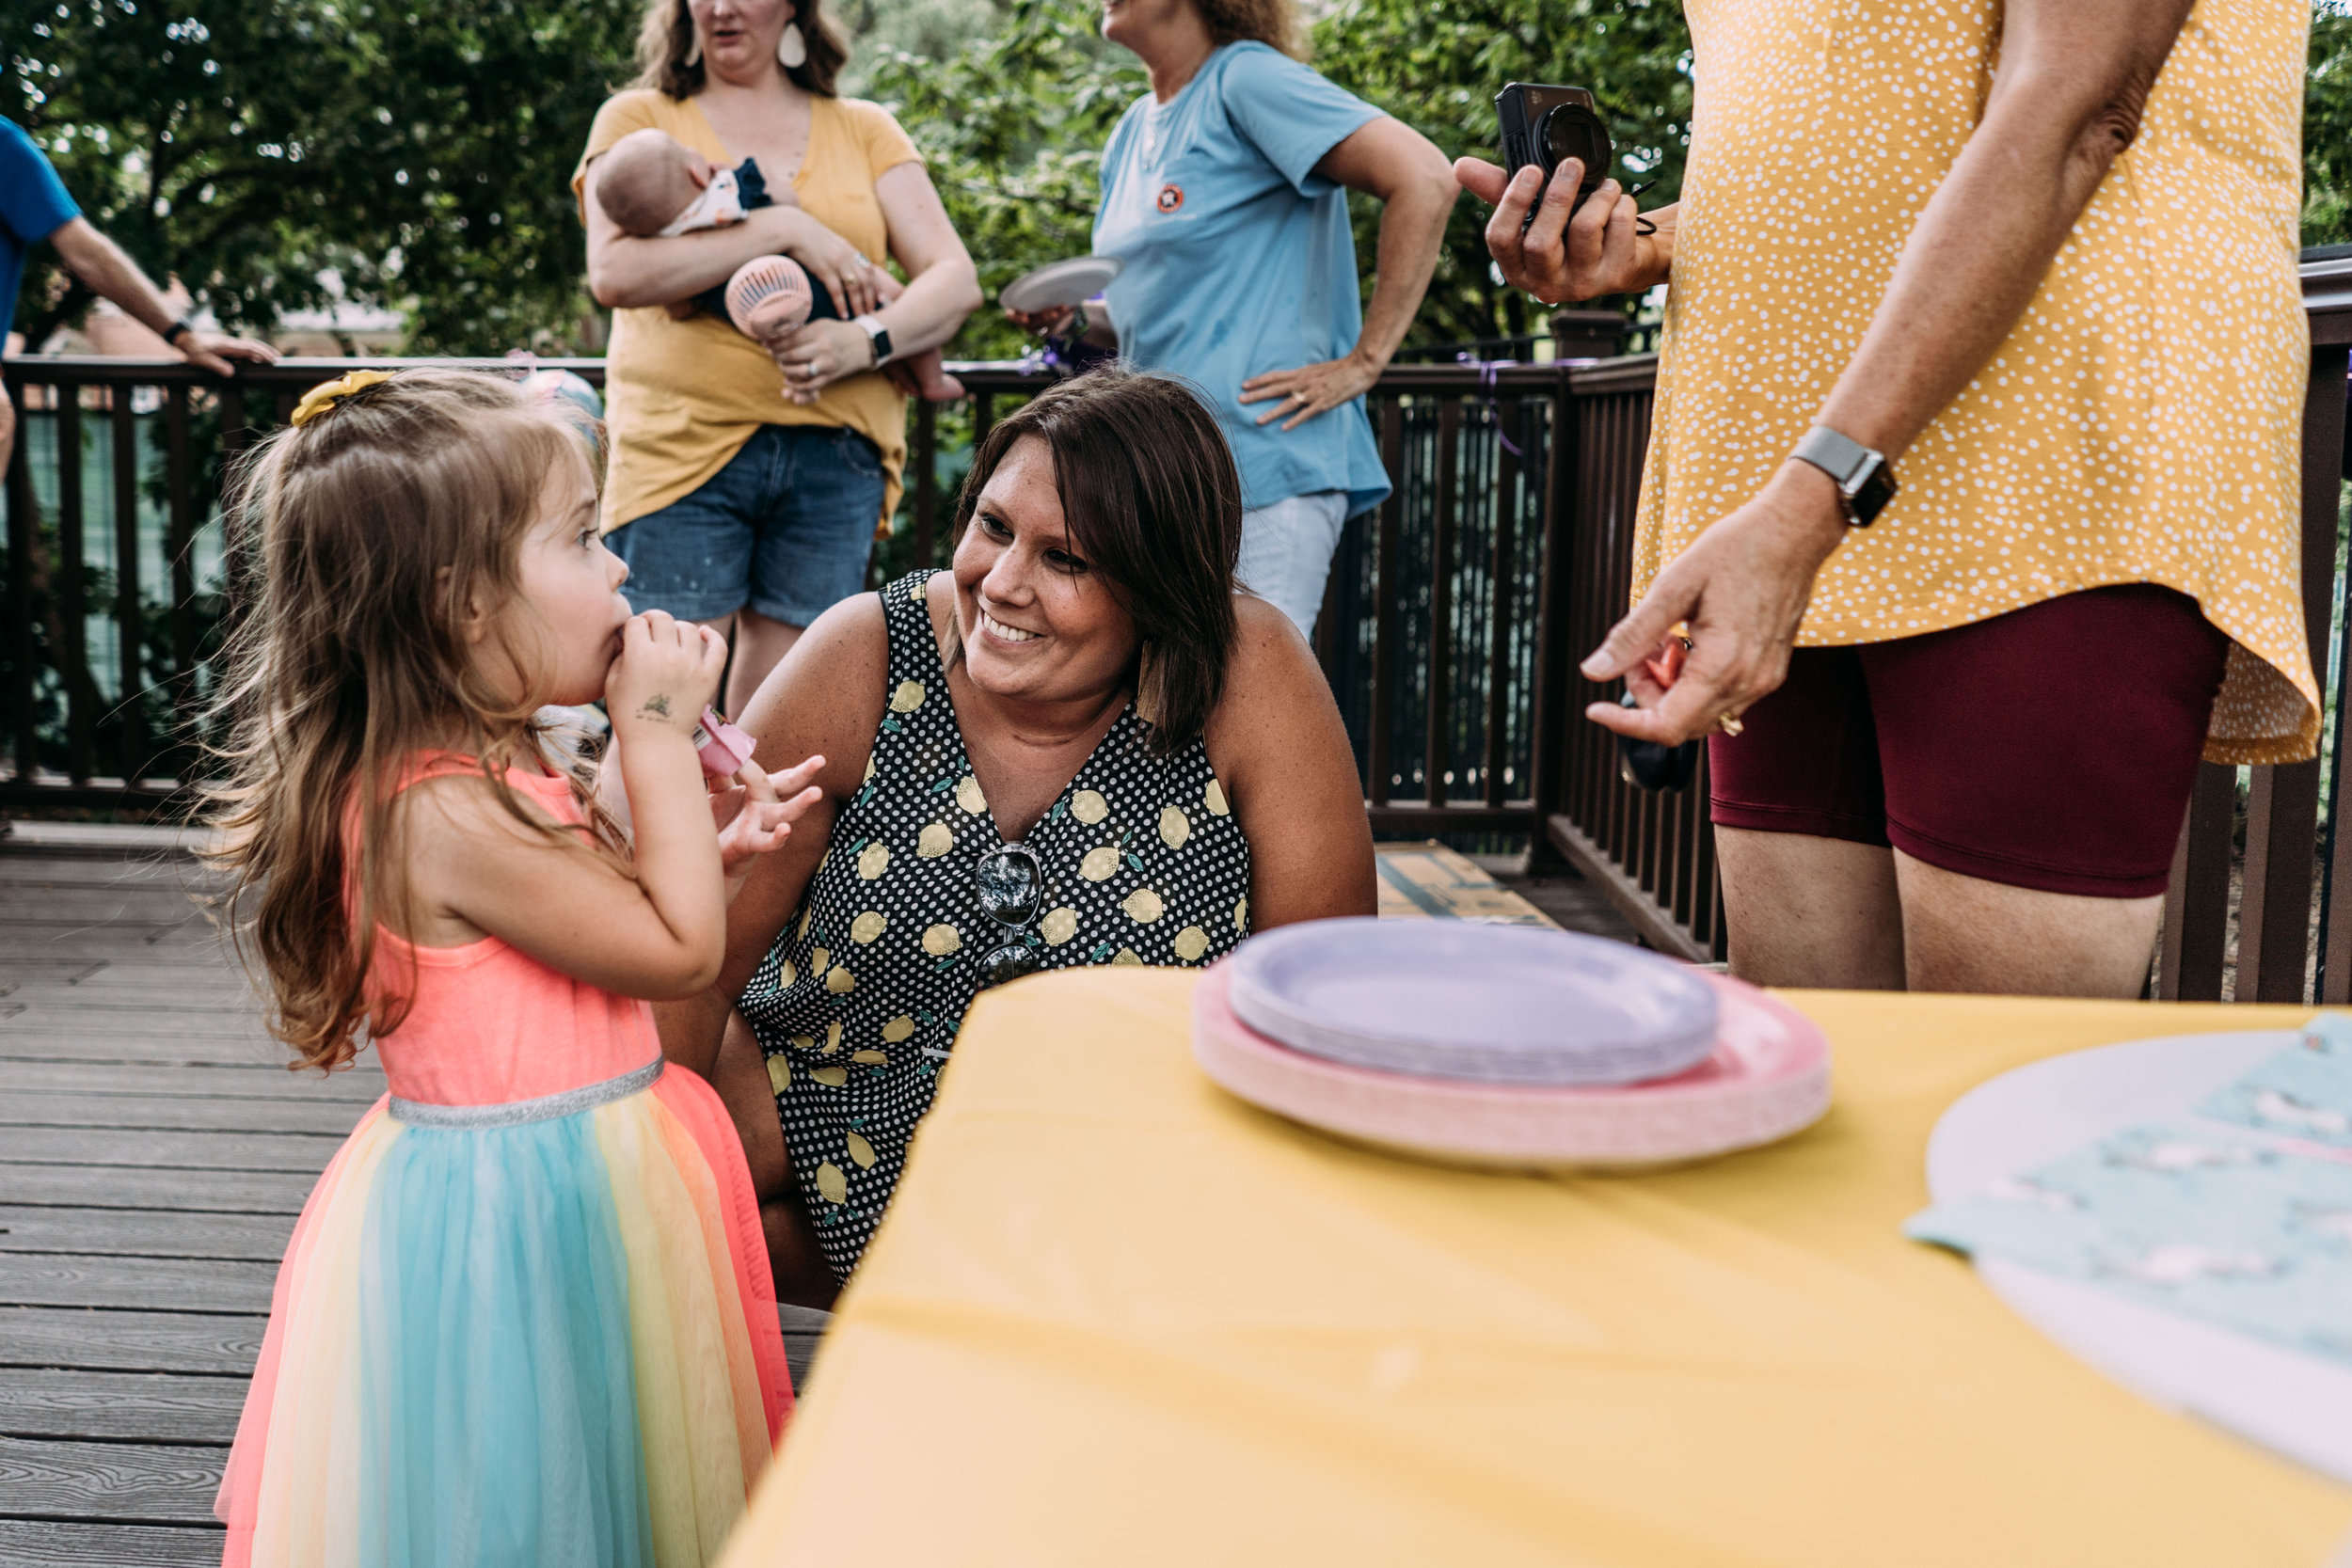 birthday party at the park-28.jpg